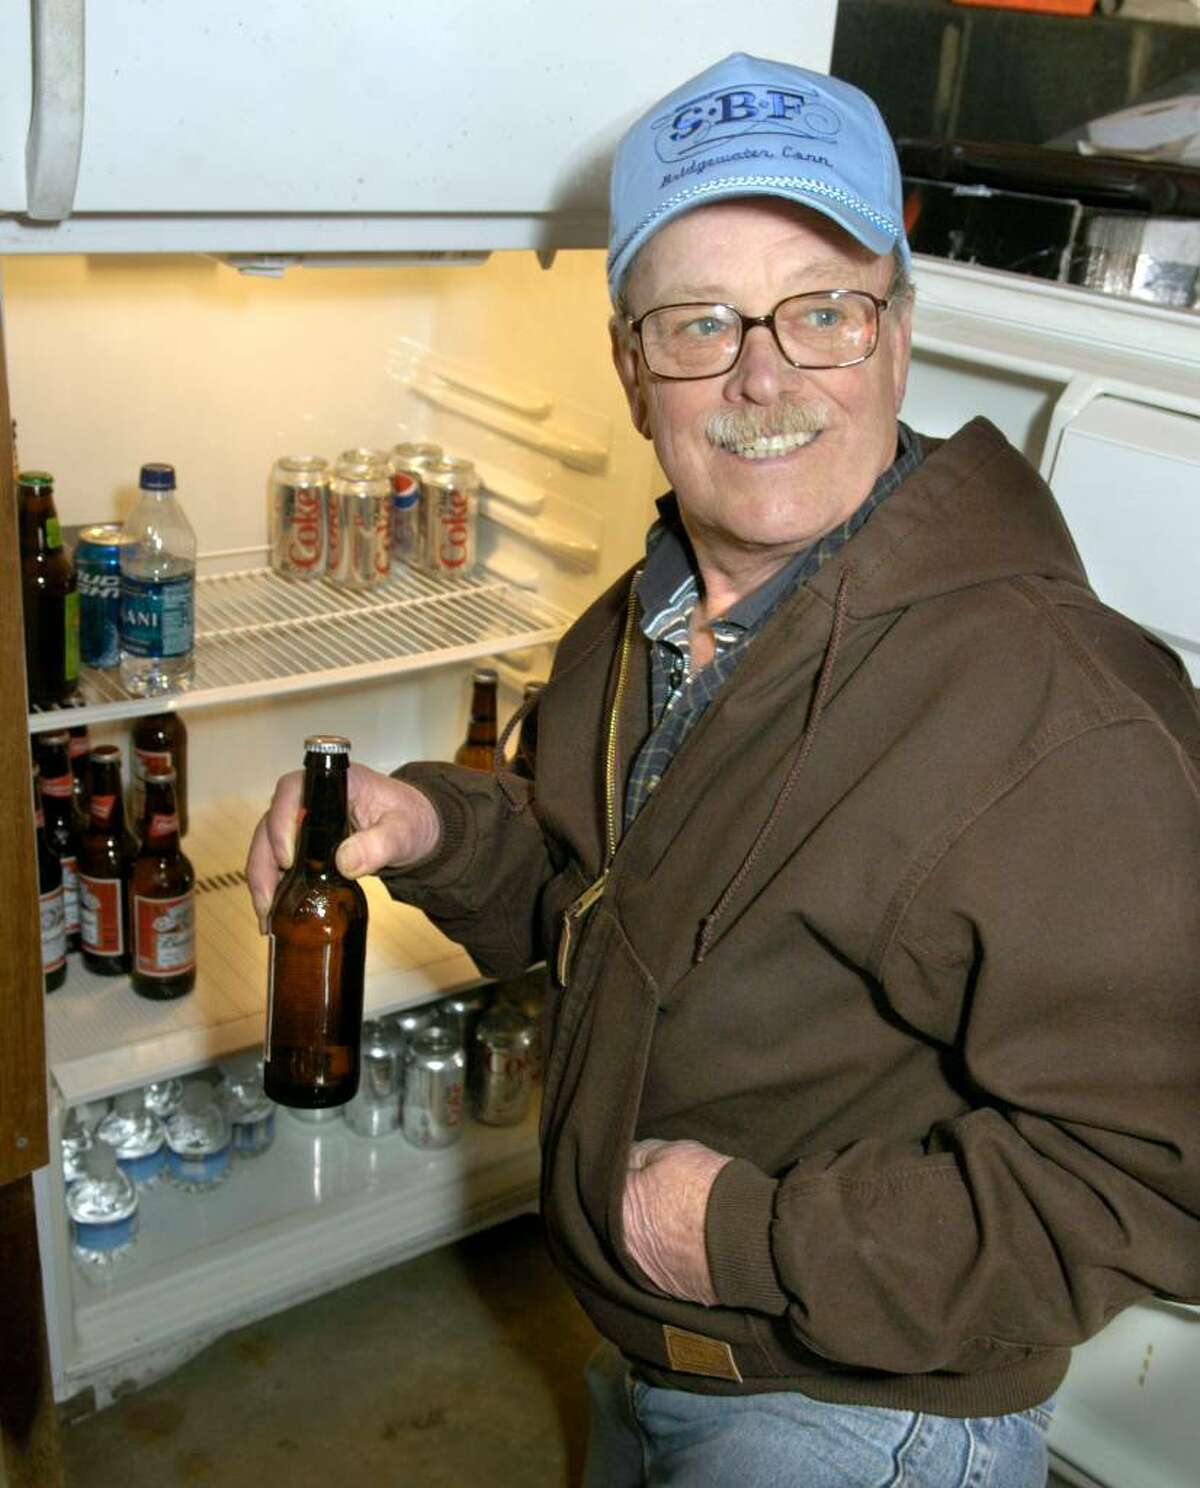 Bridgewater First Selectman Bill Stuart reaches for a beer in a refrigerator that he keeps stocked in his garage Thursday, January 14, 2010.